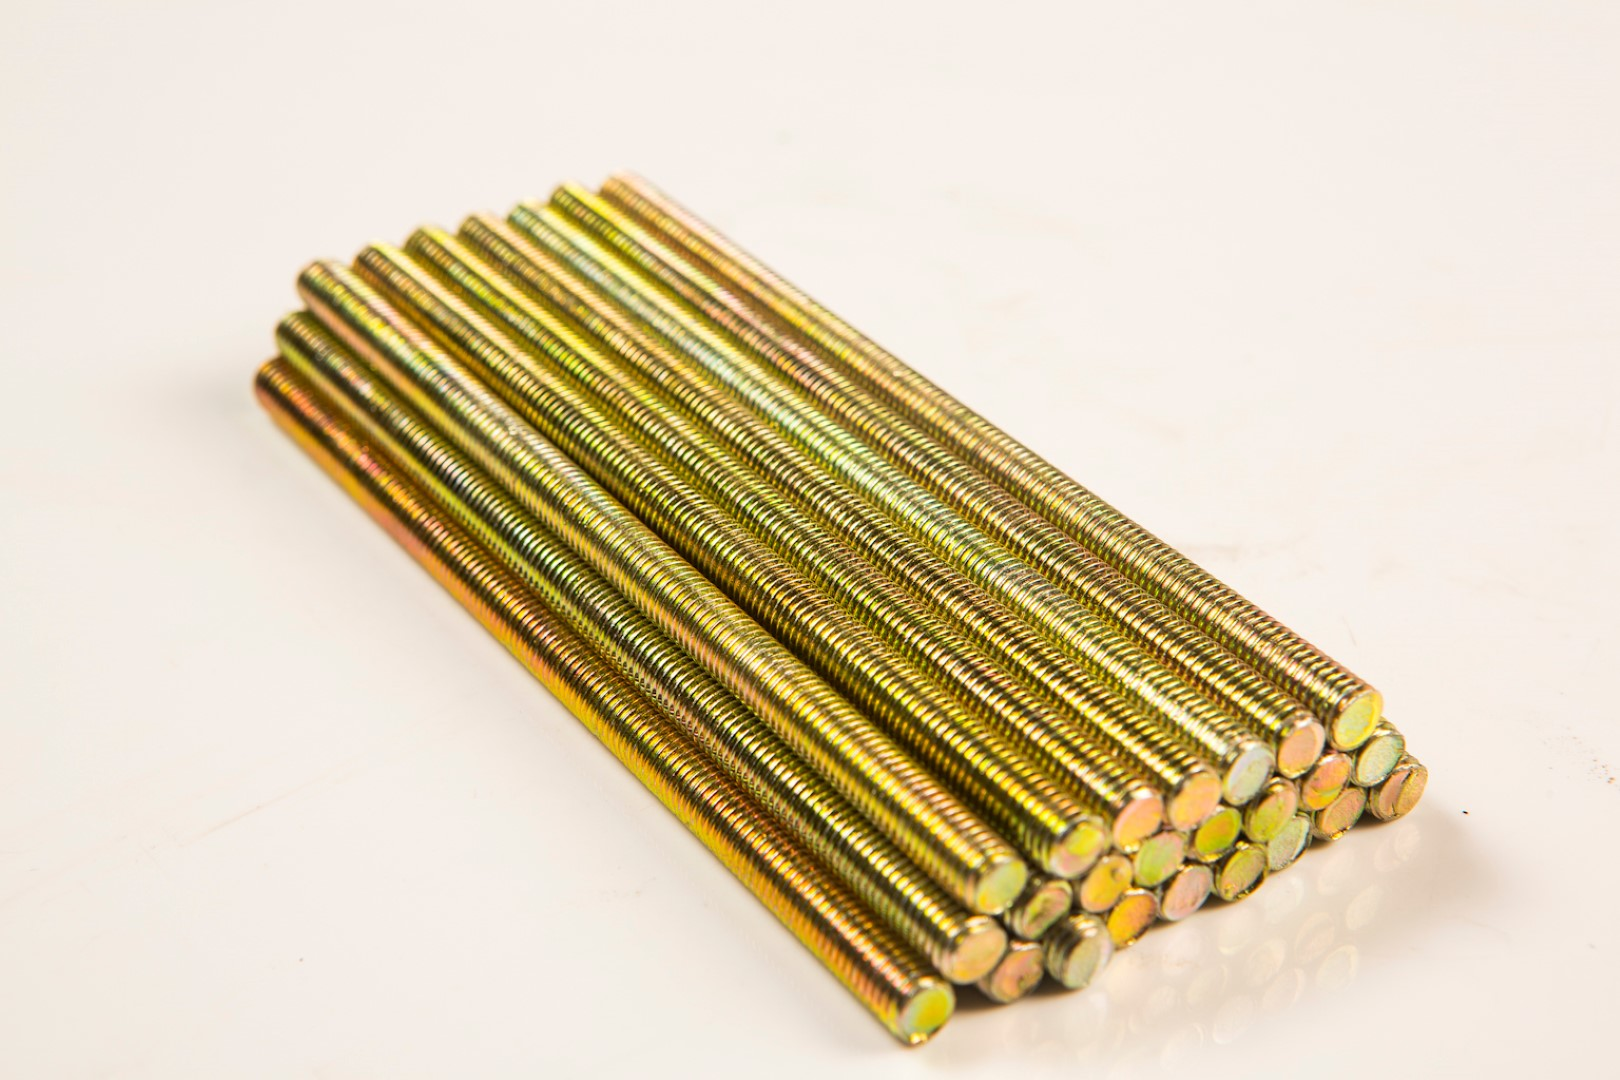 Steel threaded rod with yellow passivate electro plating, also known as fully-threaded bar or threaded stud